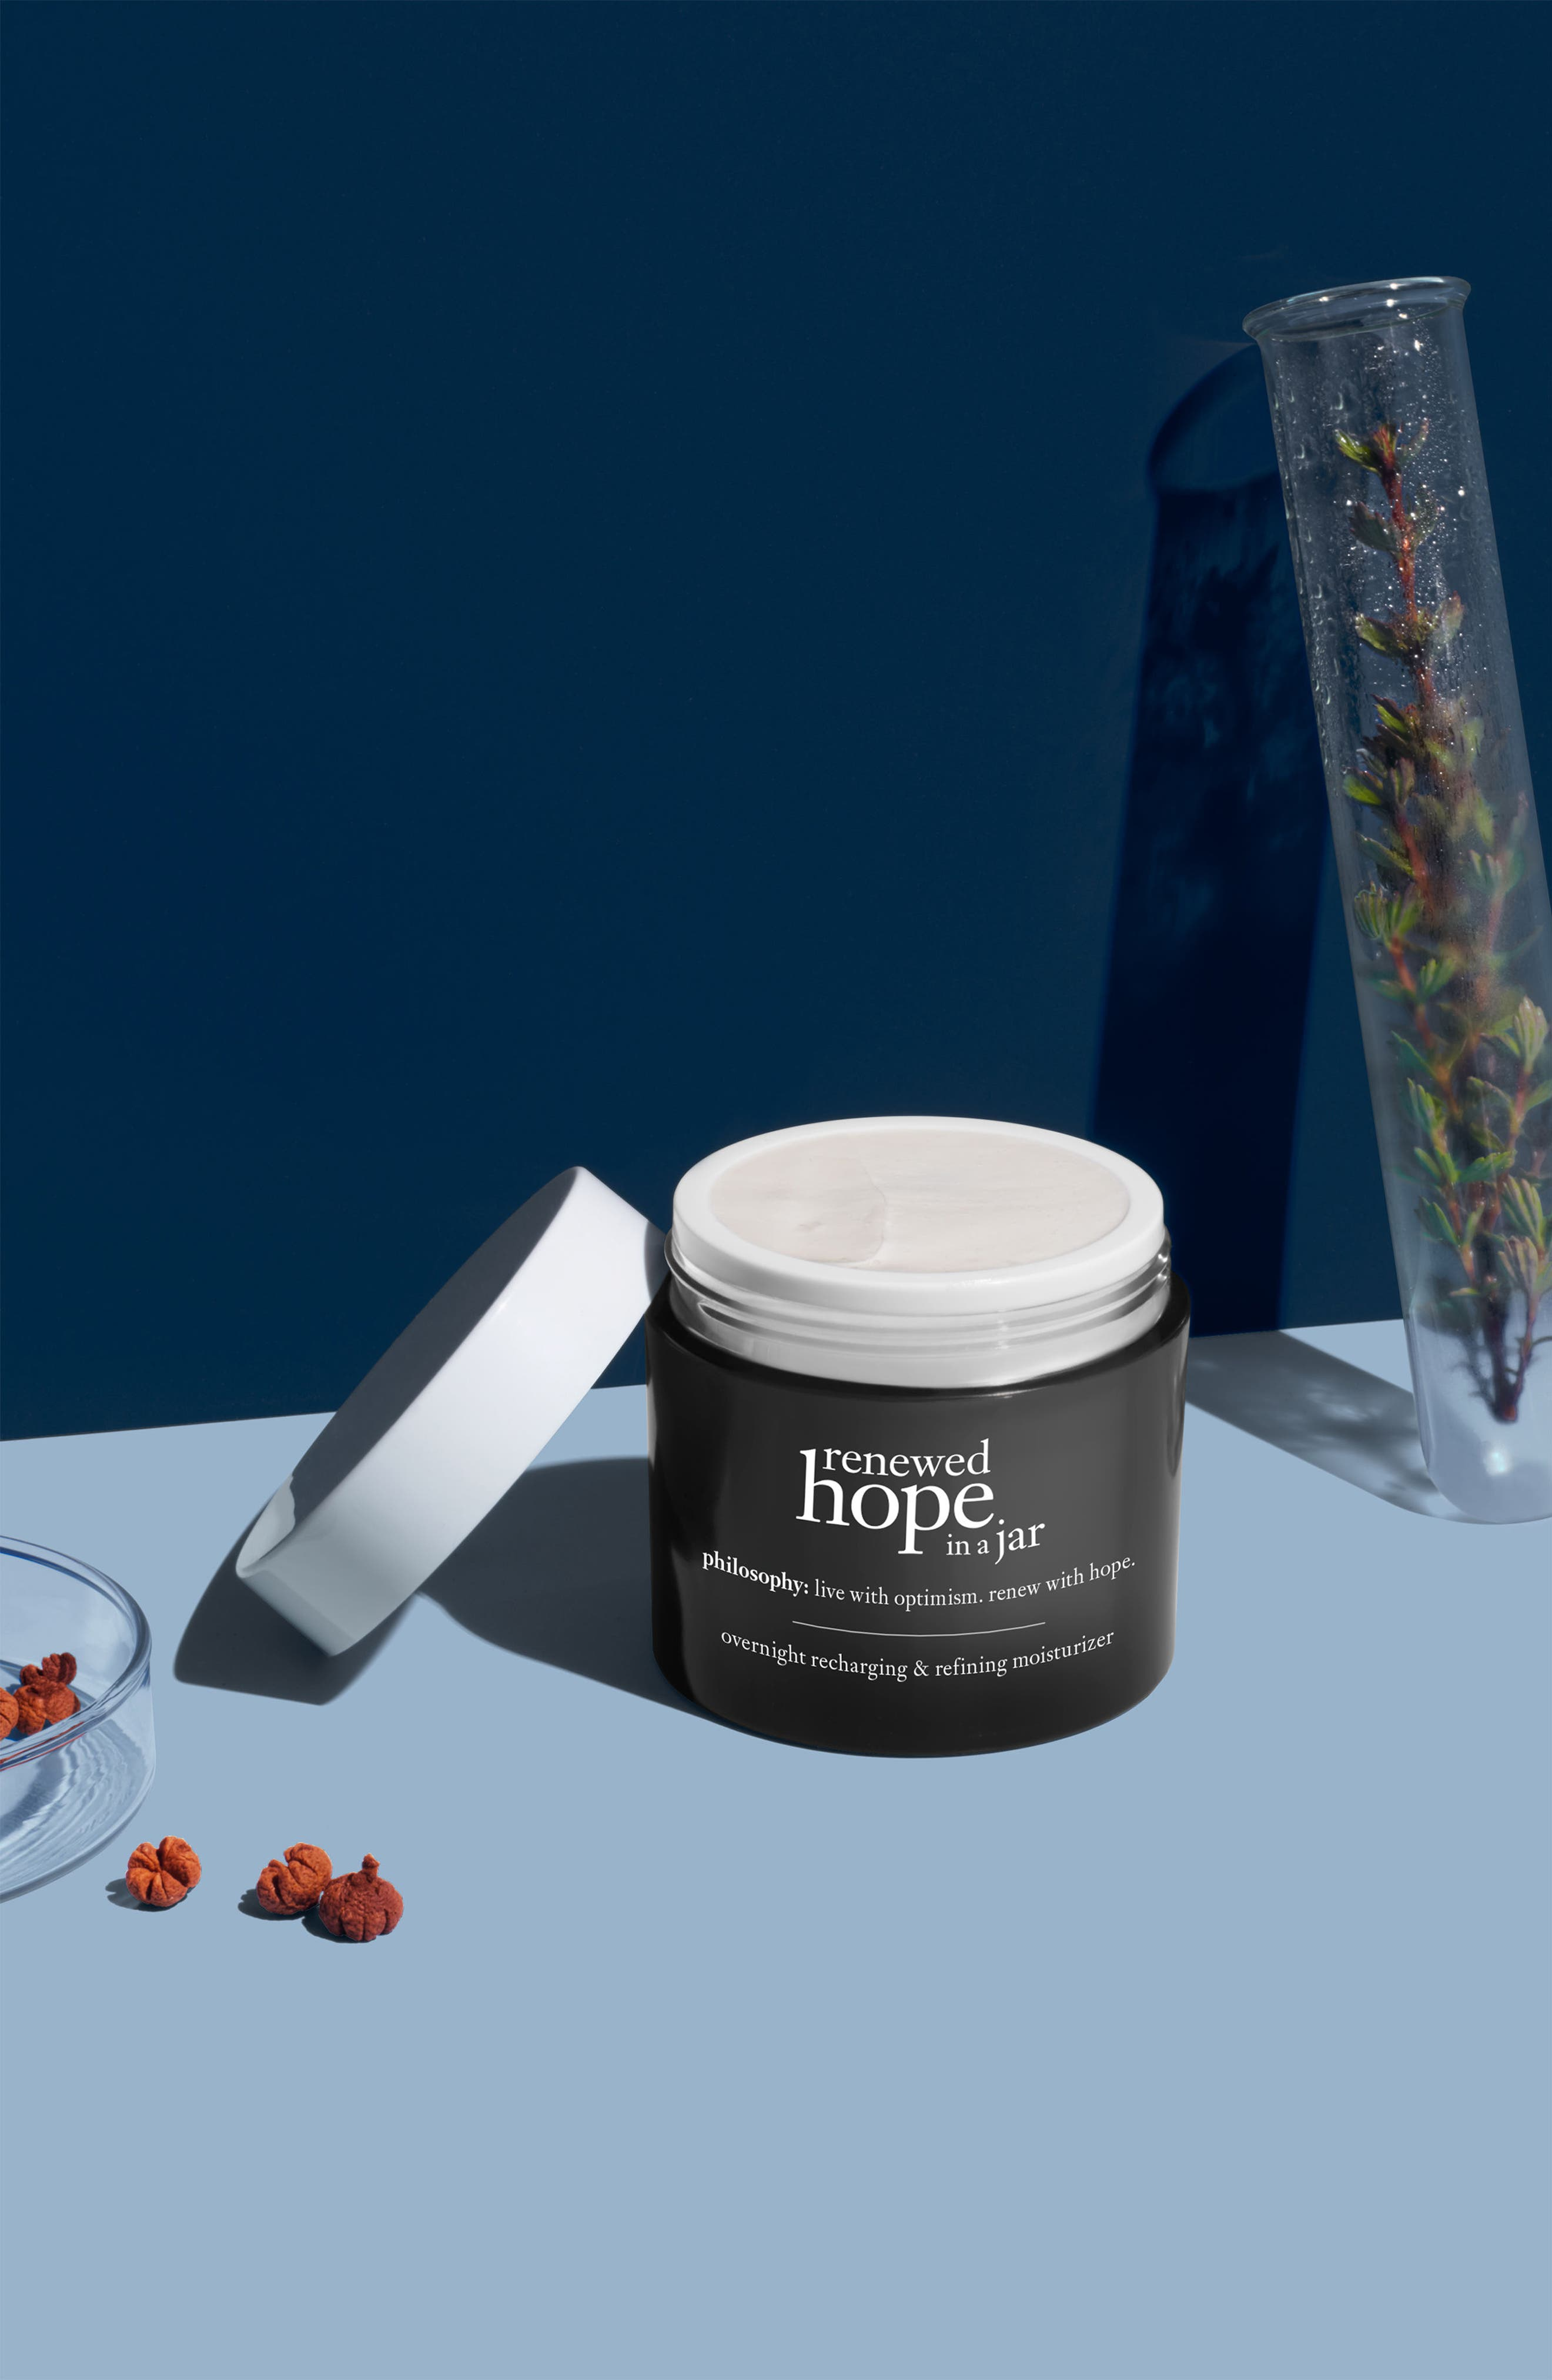 renewed hope in a jar overnight recharging & refining moisturizer,                             Alternate thumbnail 3, color,                             NO COLOR